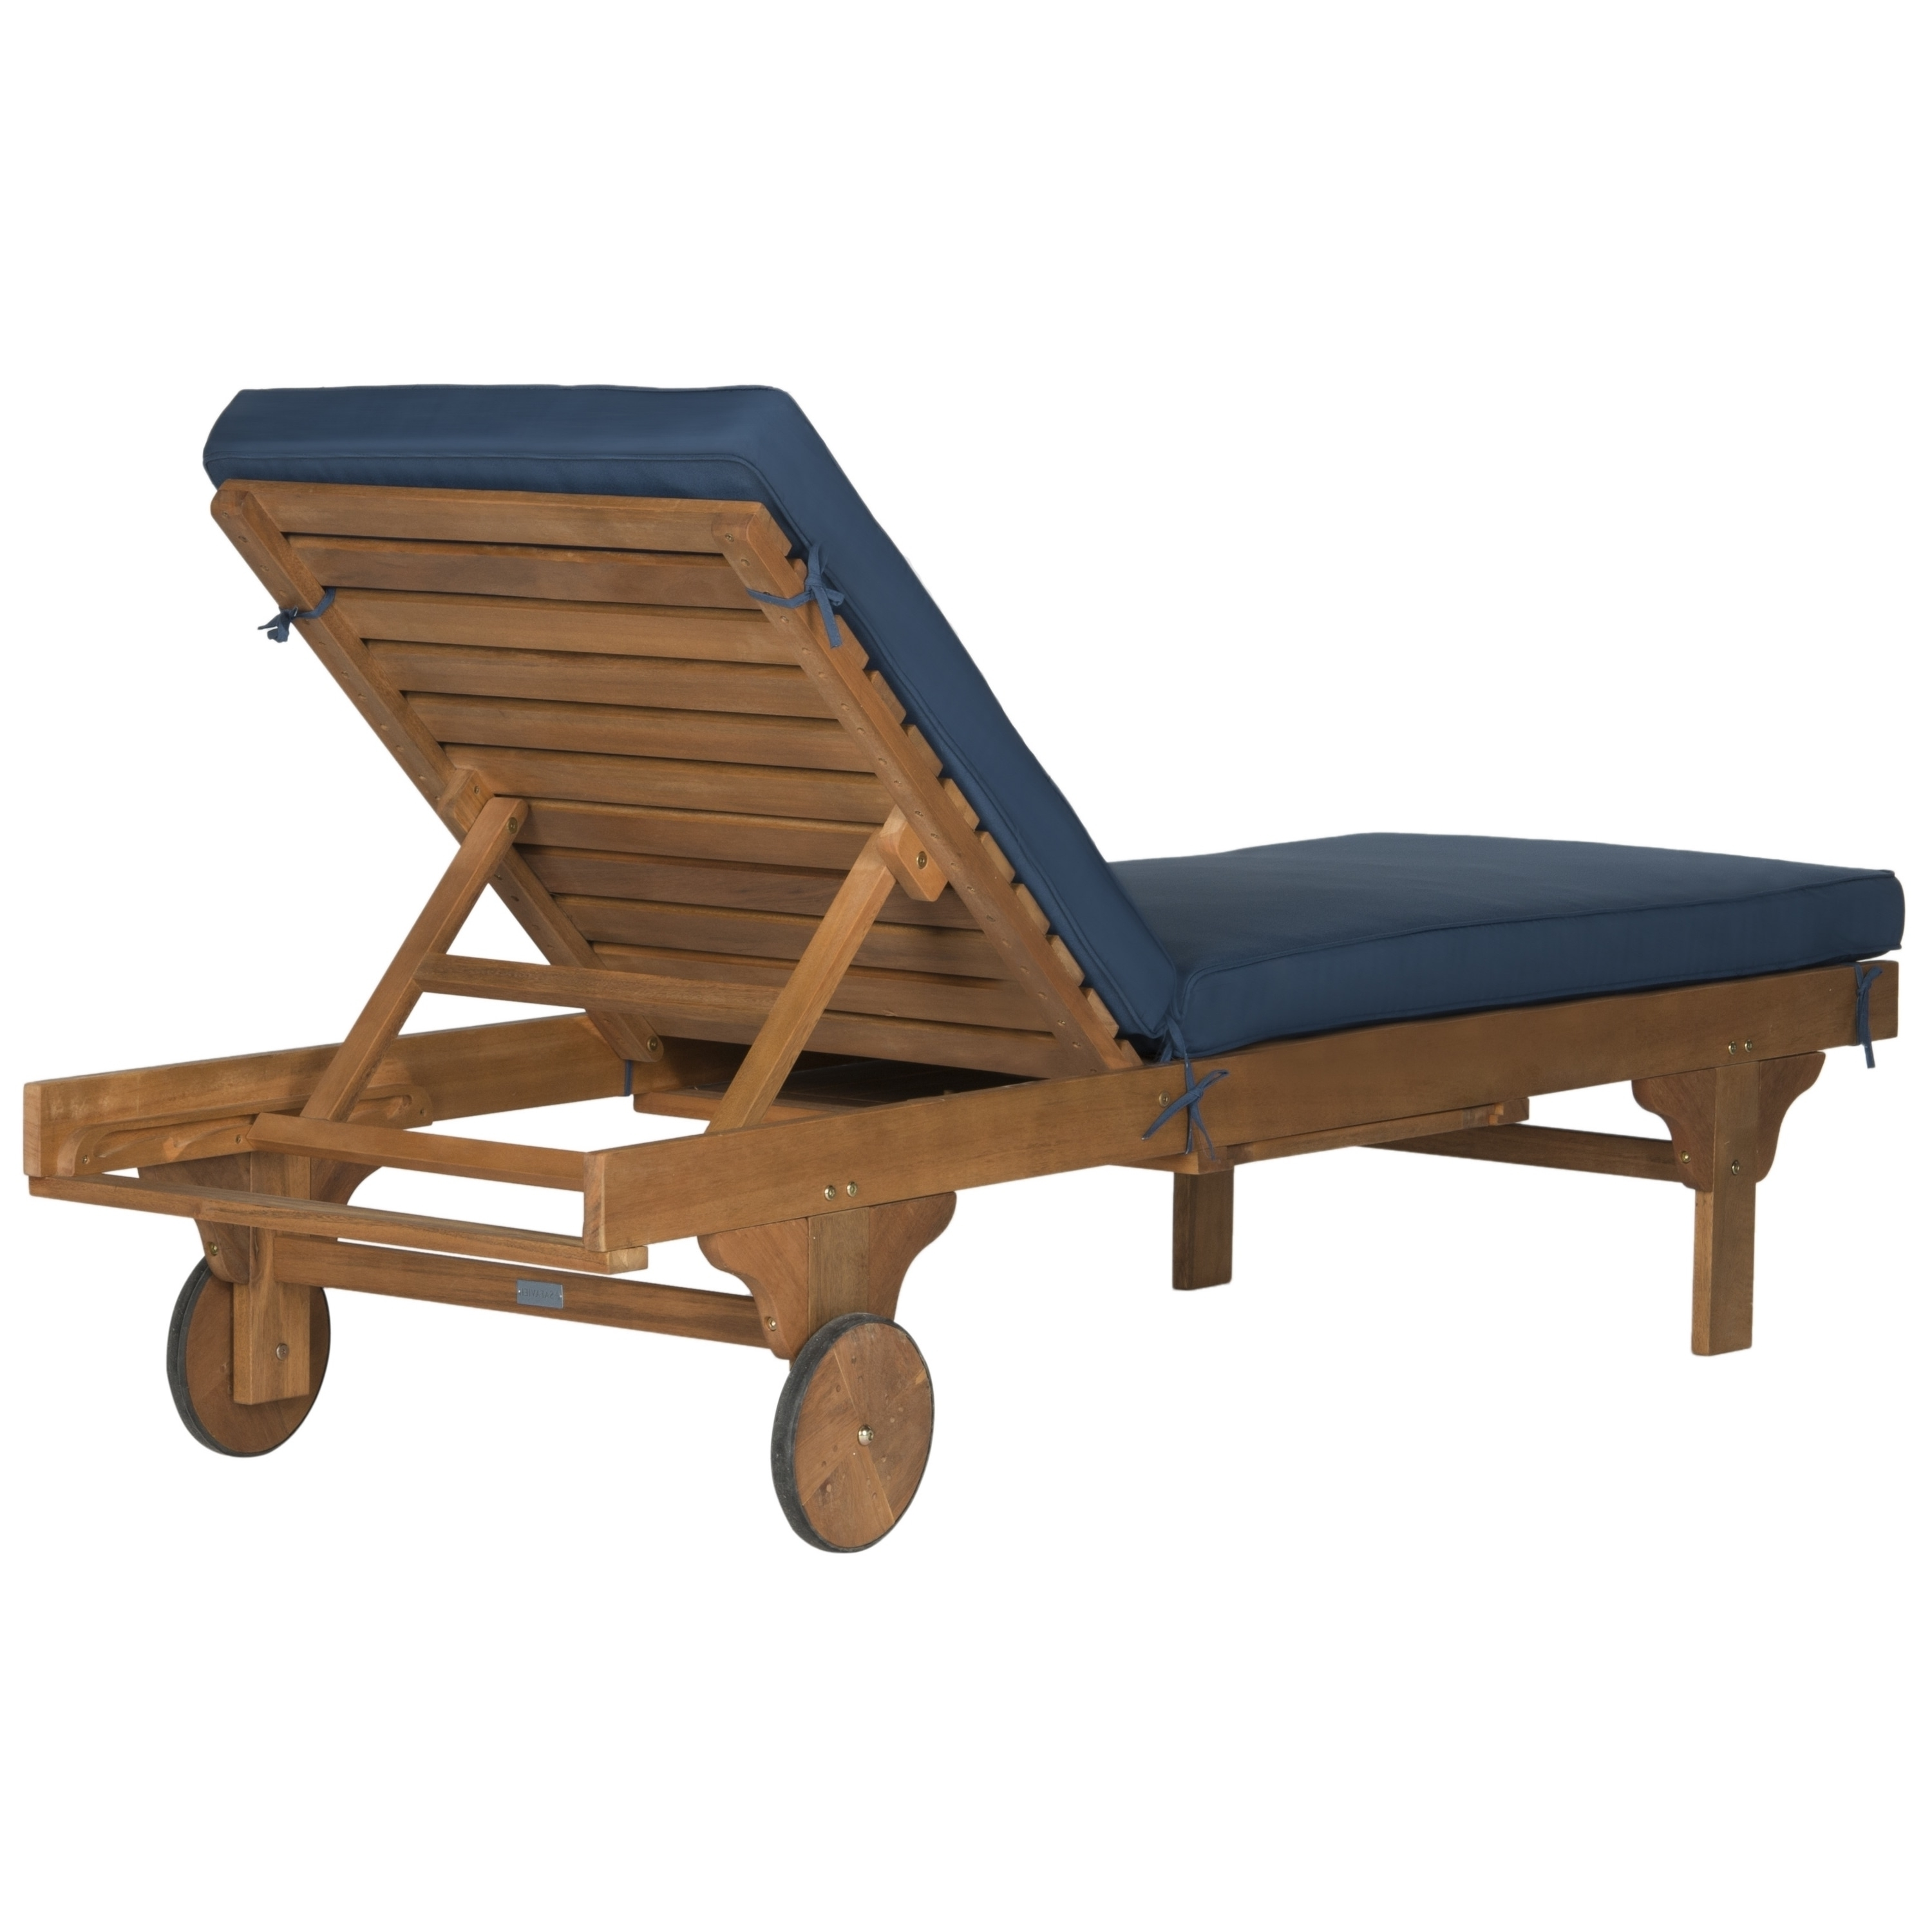 Safavieh Outdoor Living Newport Brown/ Navy Adjustable Chaise Pertaining To 2017 Newport Chaise Lounge Chairs (View 12 of 15)